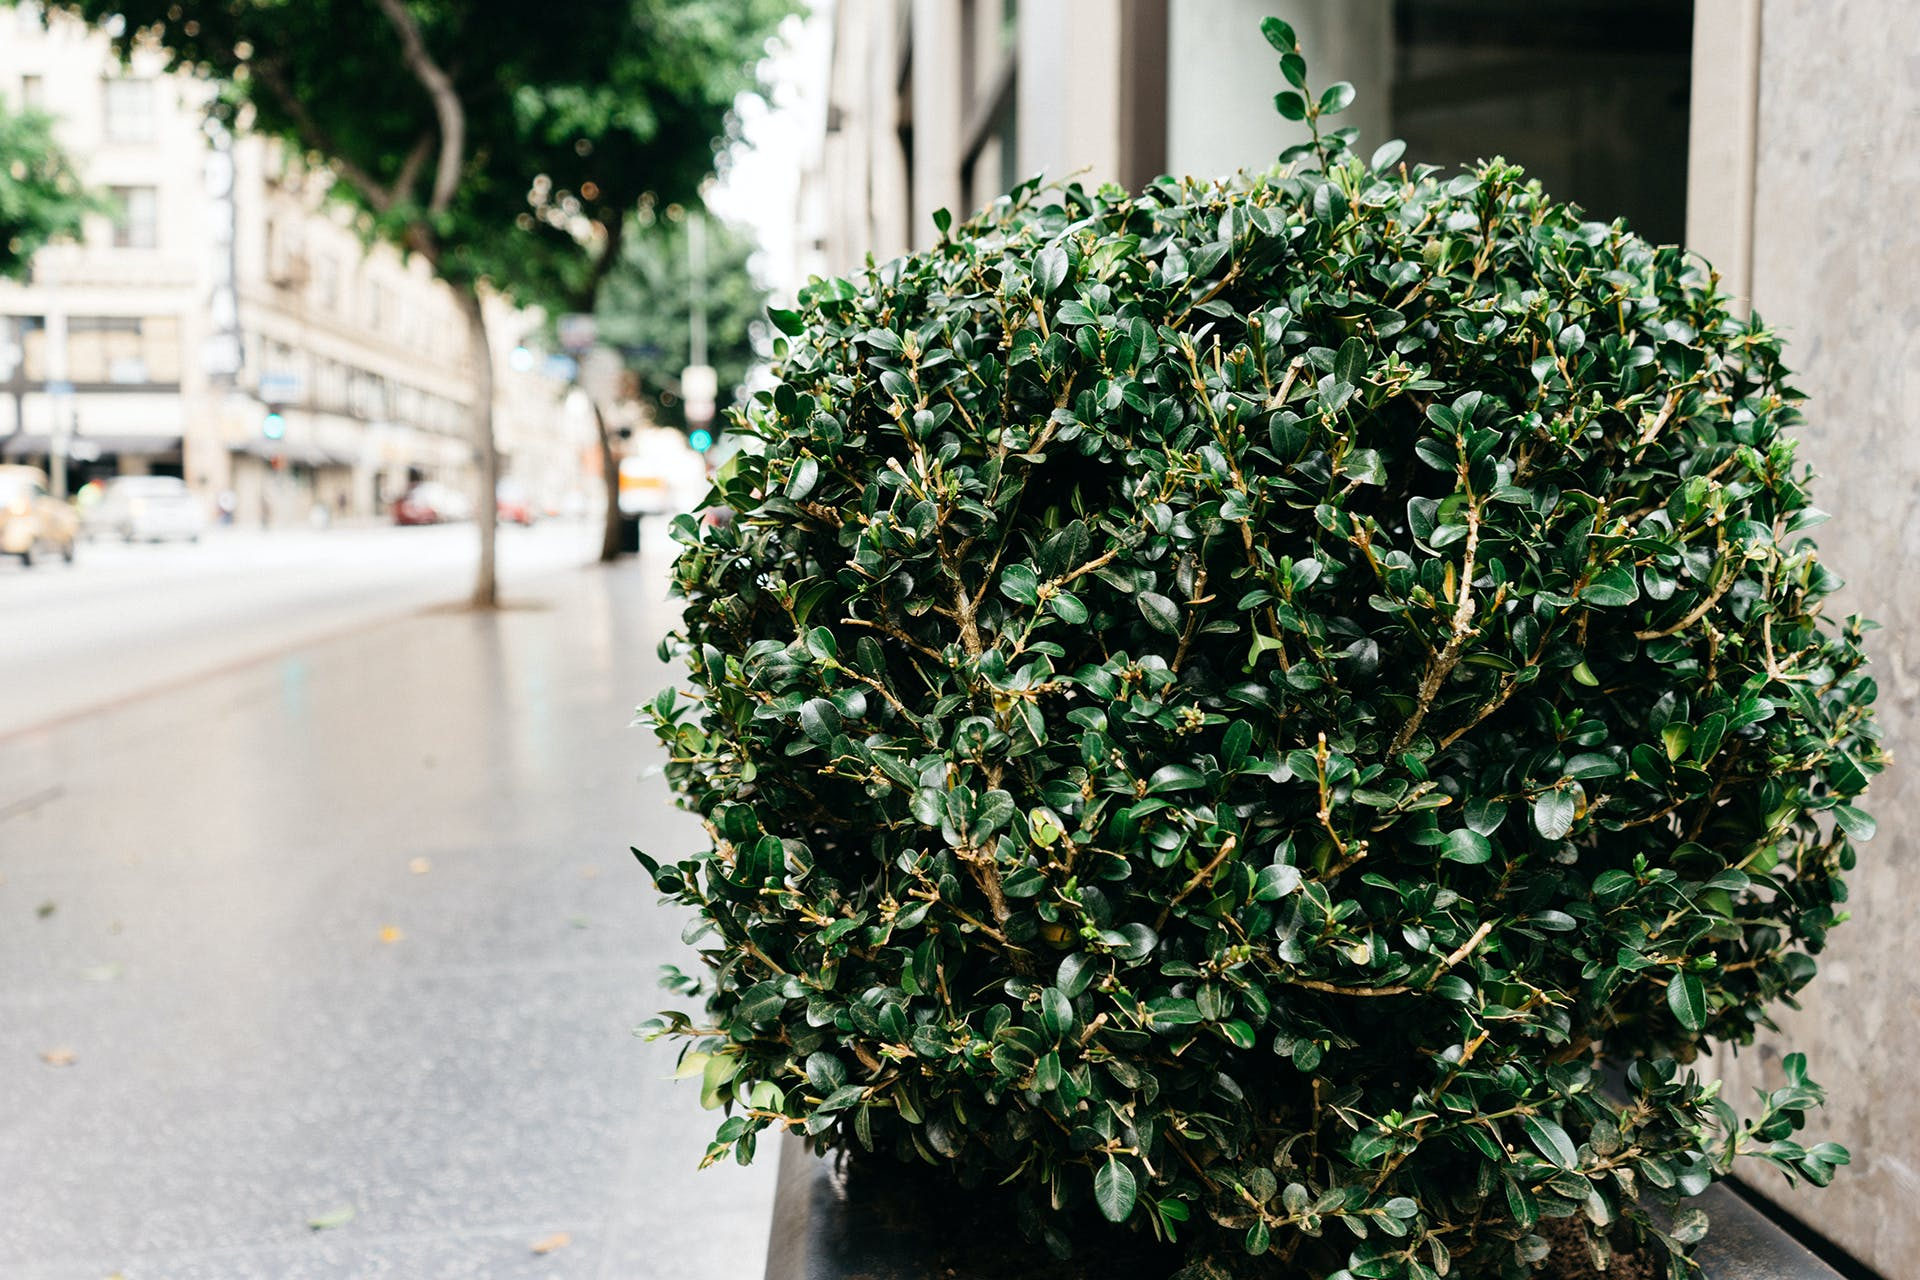 Green-leafed Outdoor Plant